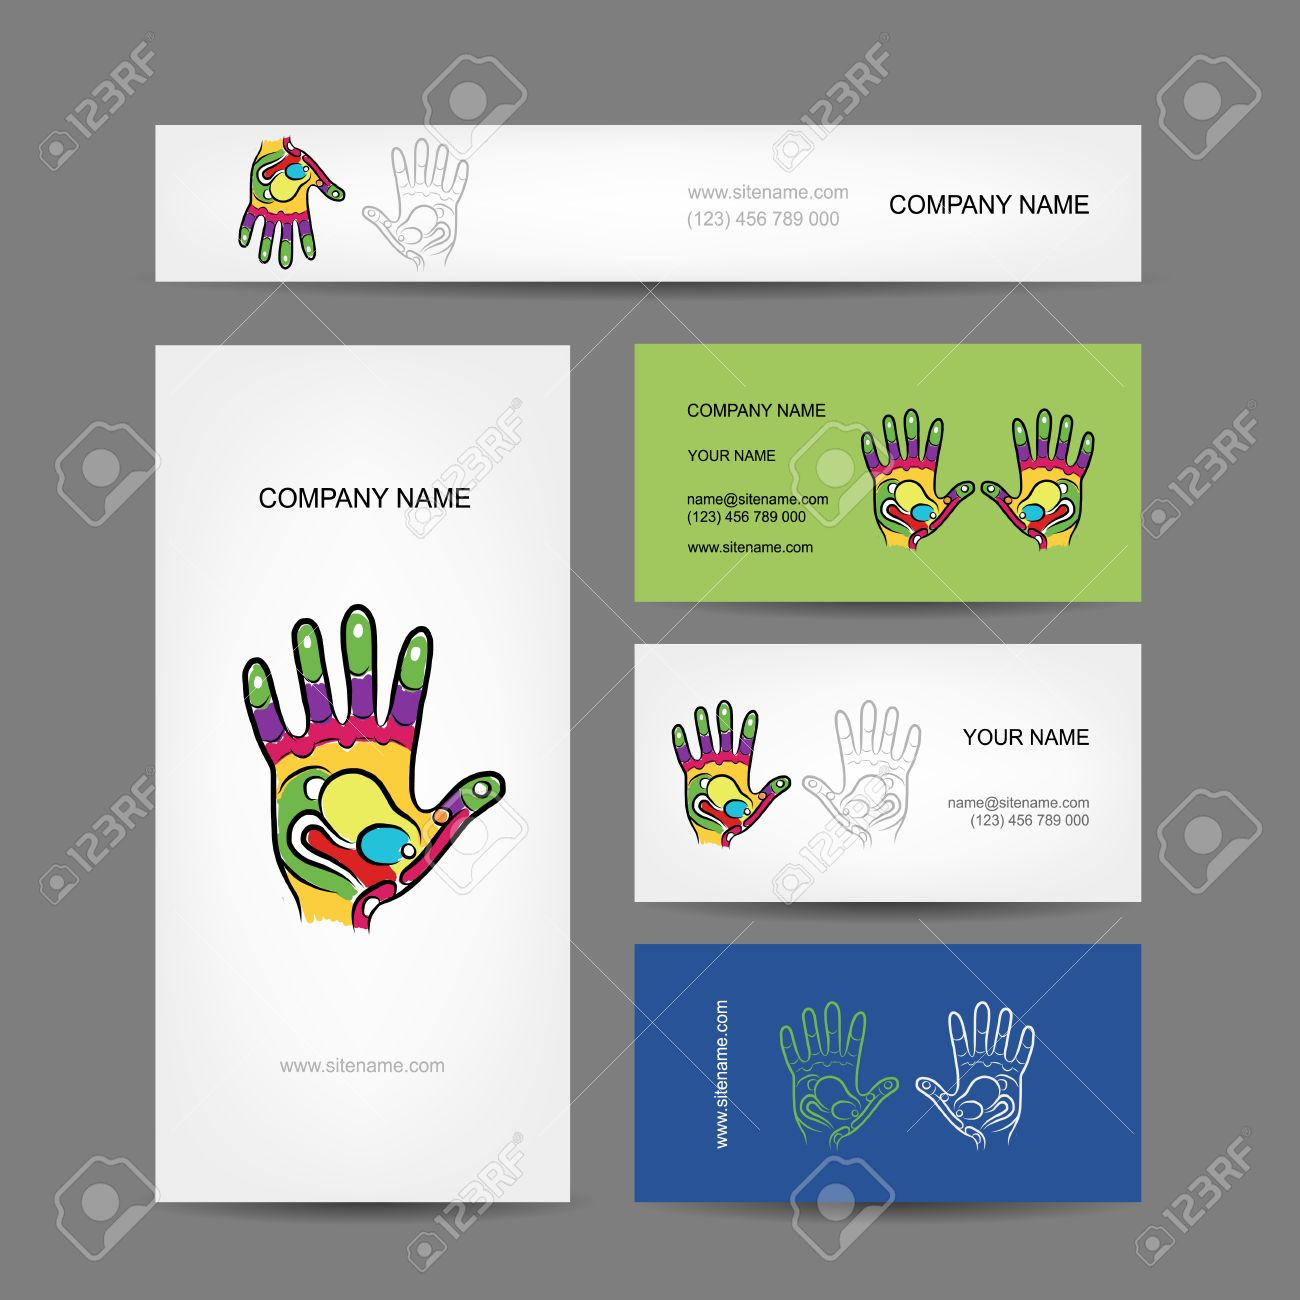 Business Cards Design With Hand, Massage Reflexology Royalty Free ...